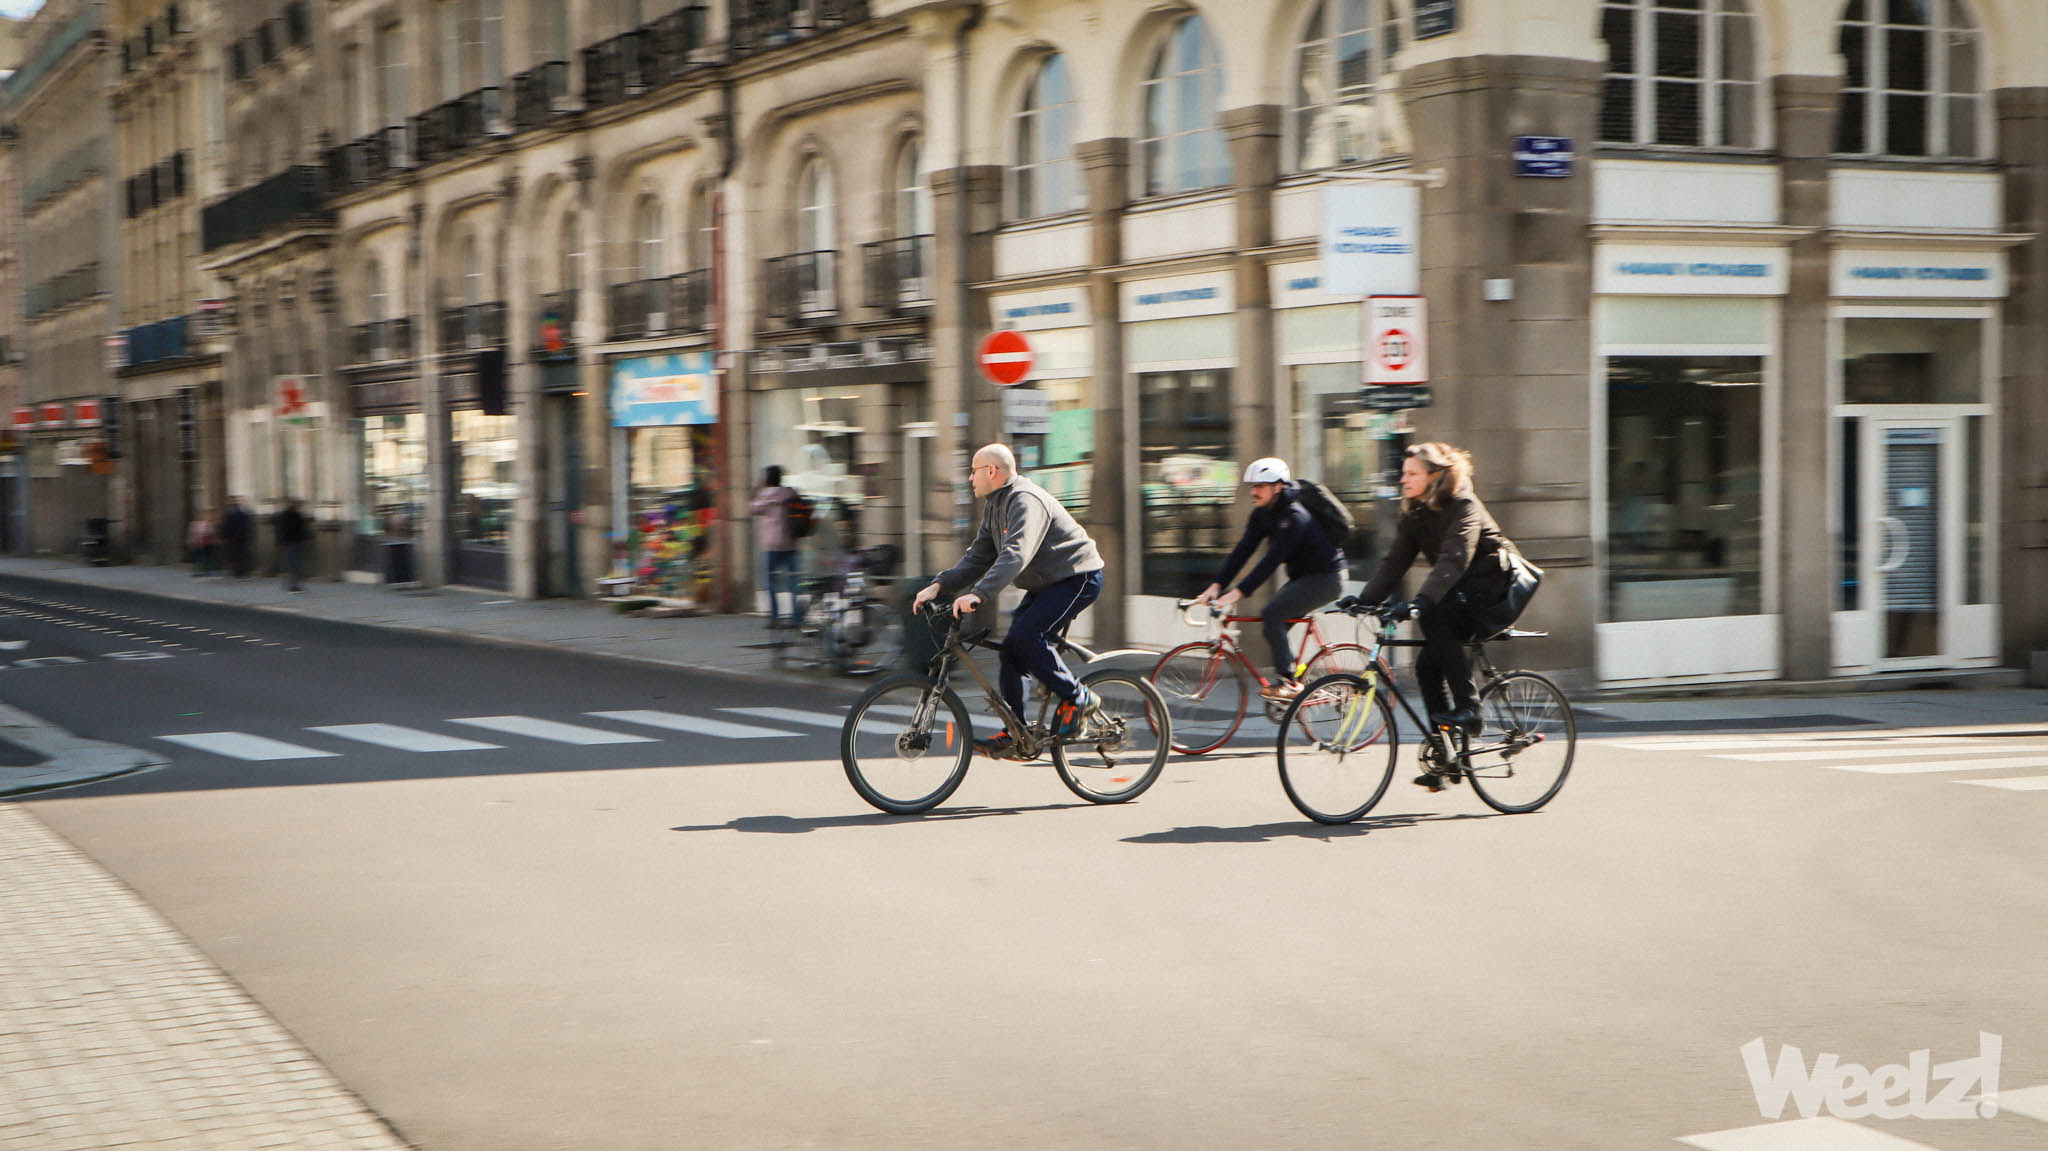 Weelz Rennes Velo Urbain Cycliste In Out Mobilites 3943